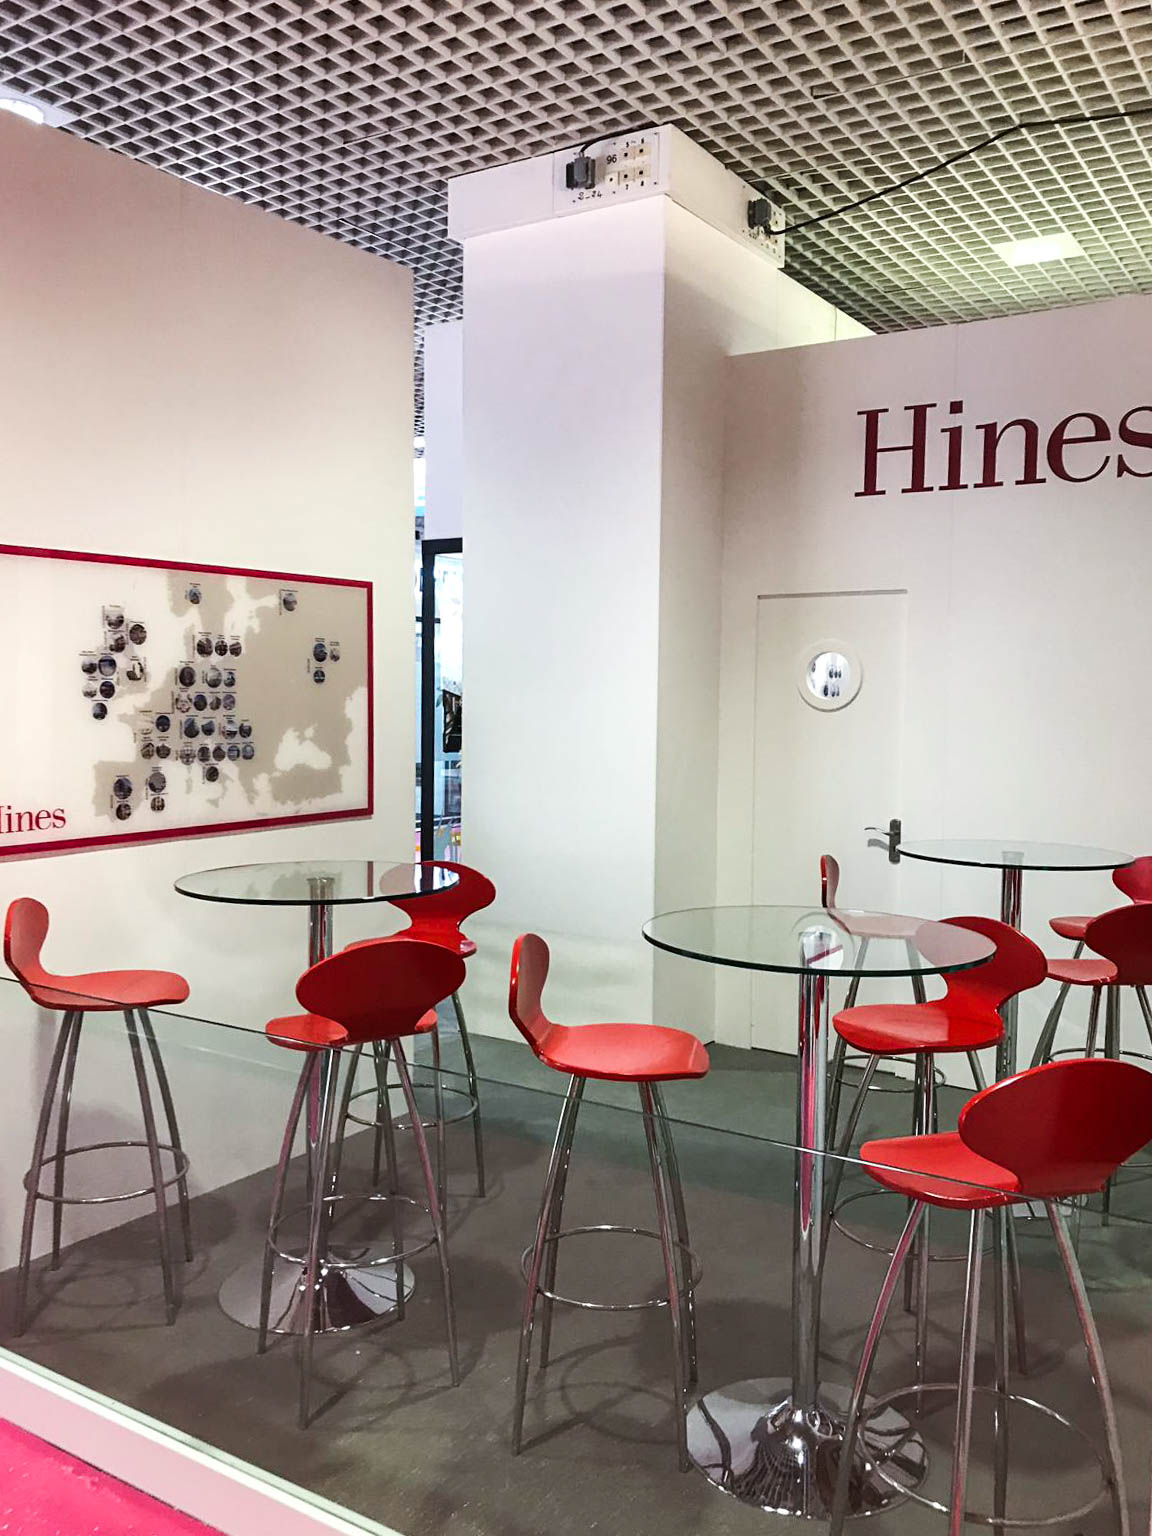 Envisage_Hines@MAPIC-5